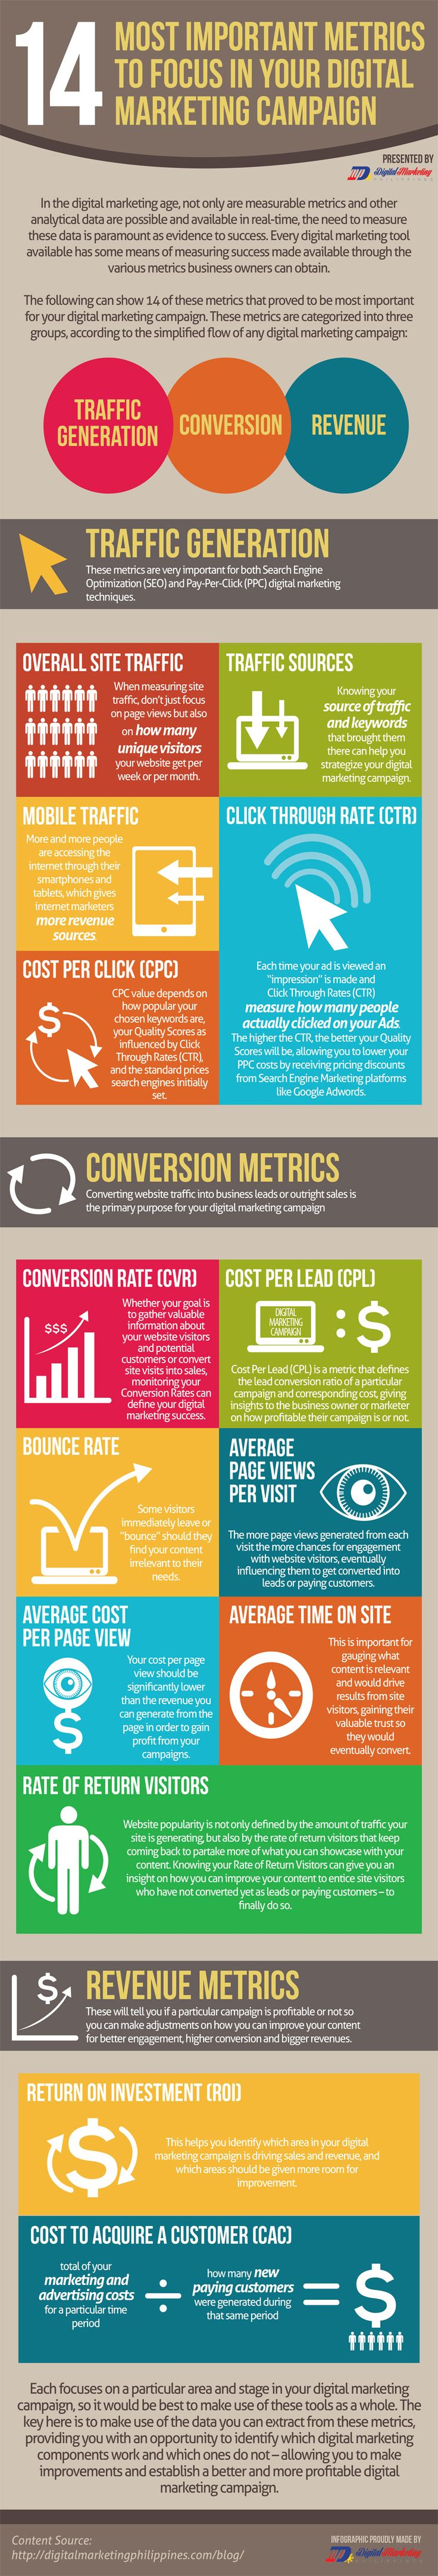 most important digital marketing metrics